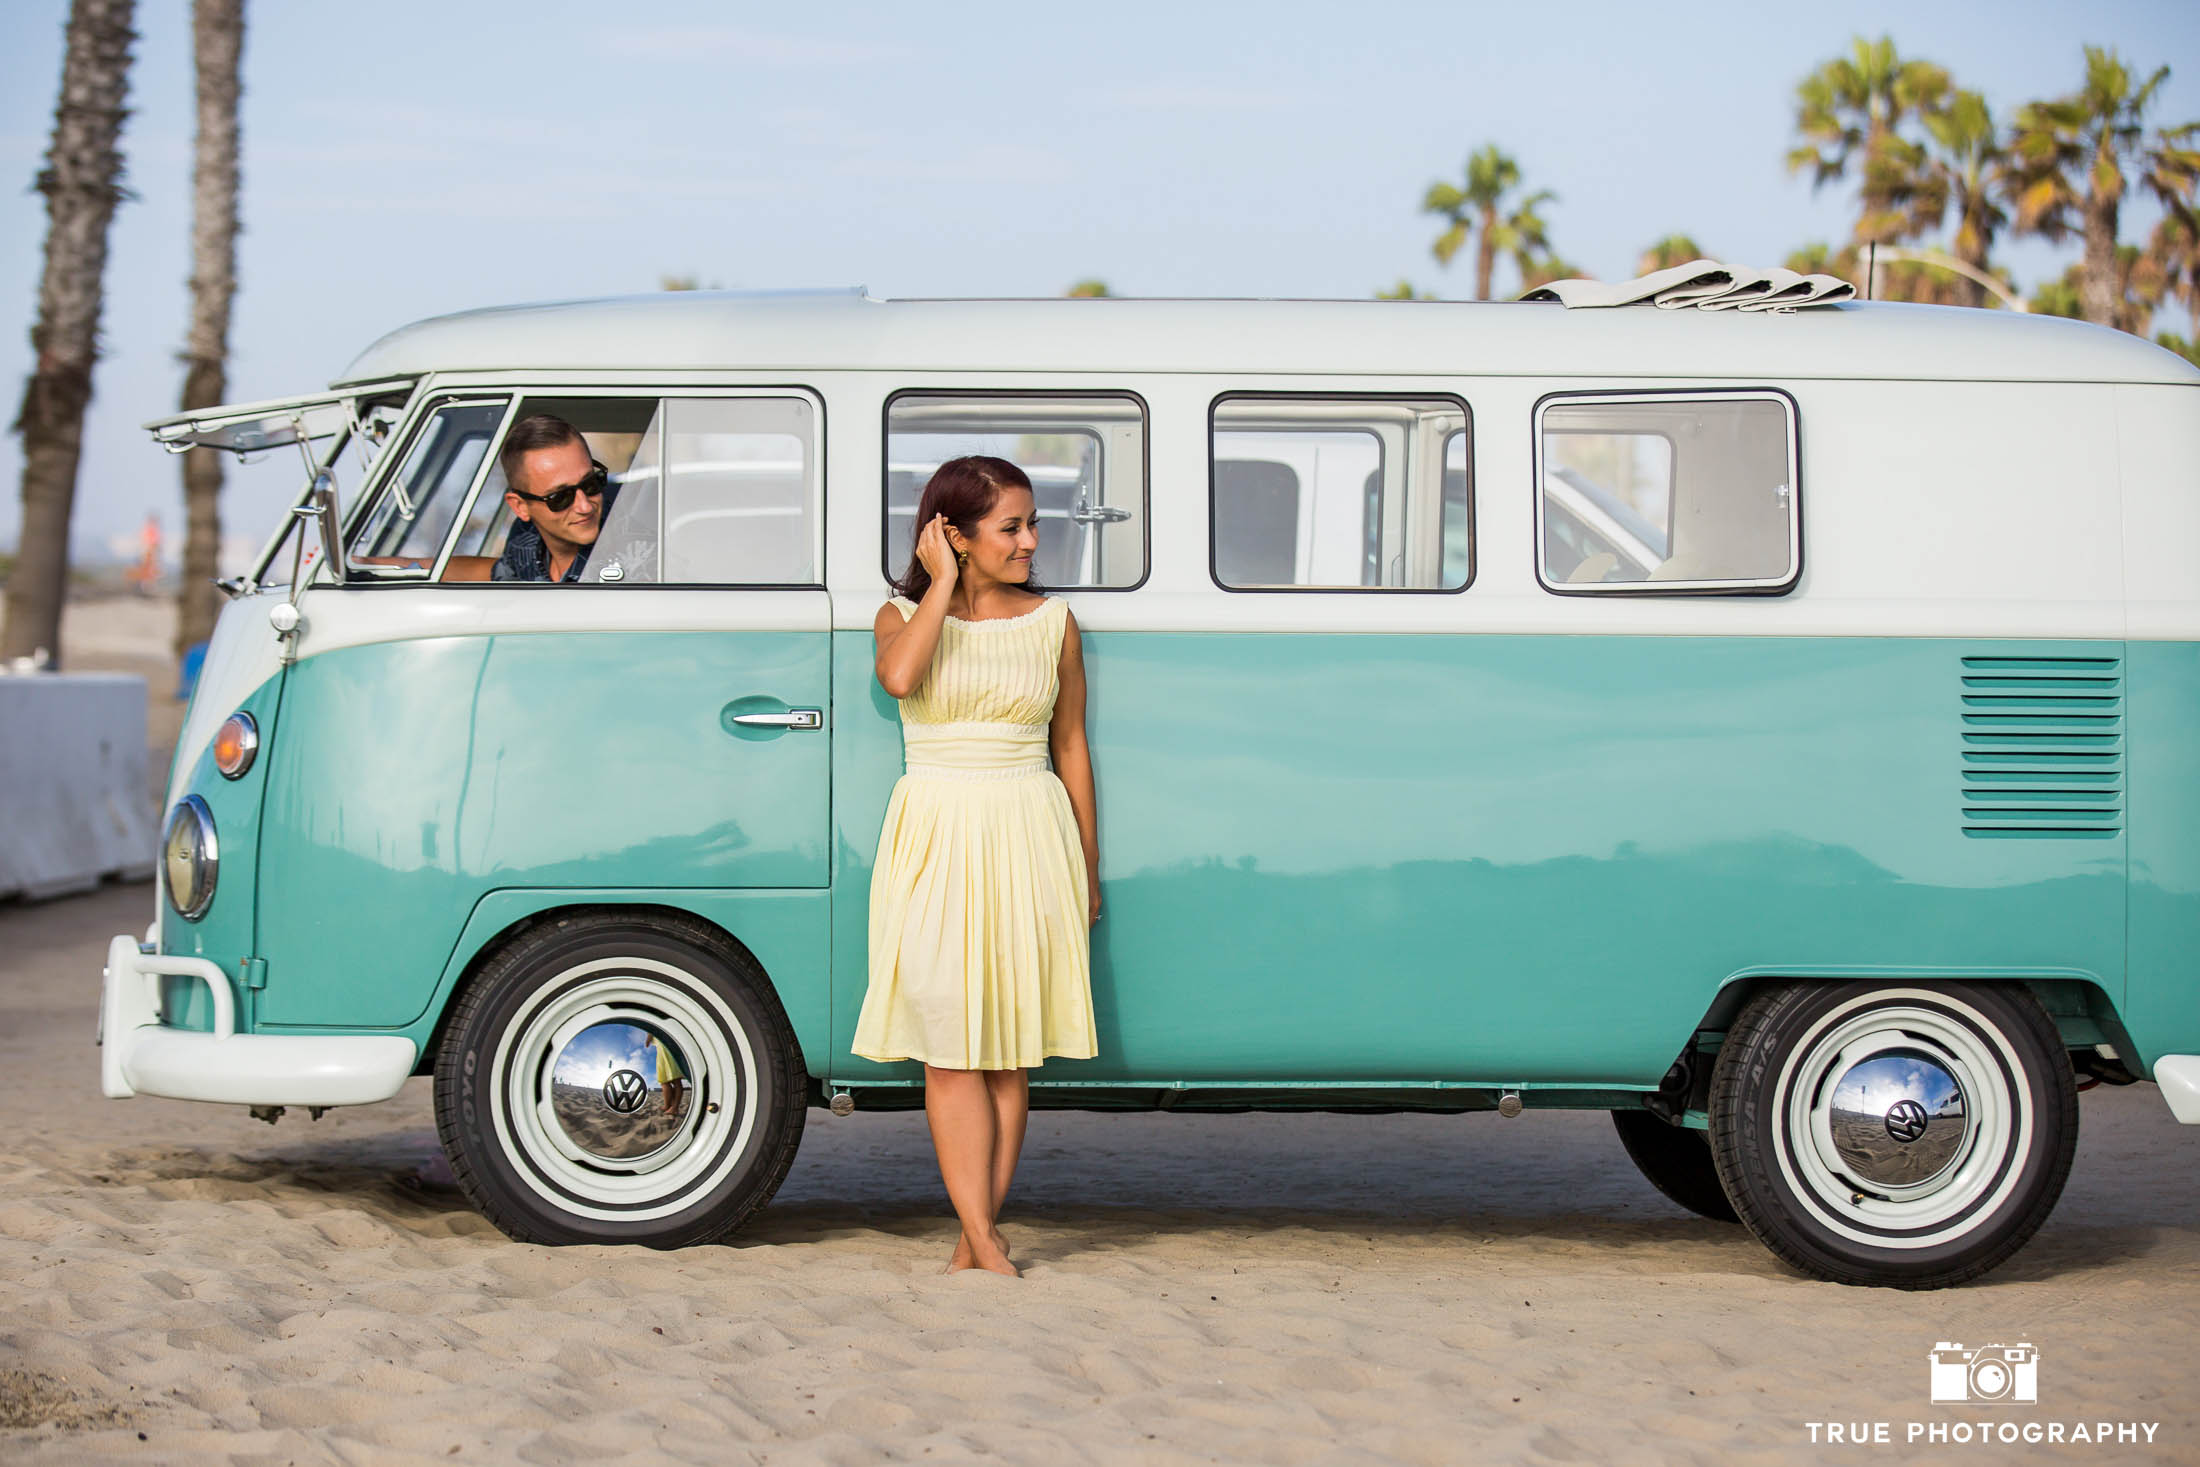 Bride-to-be stands outside vintage Volkswagen bus while Groom-to-be looks at her and drives on beach